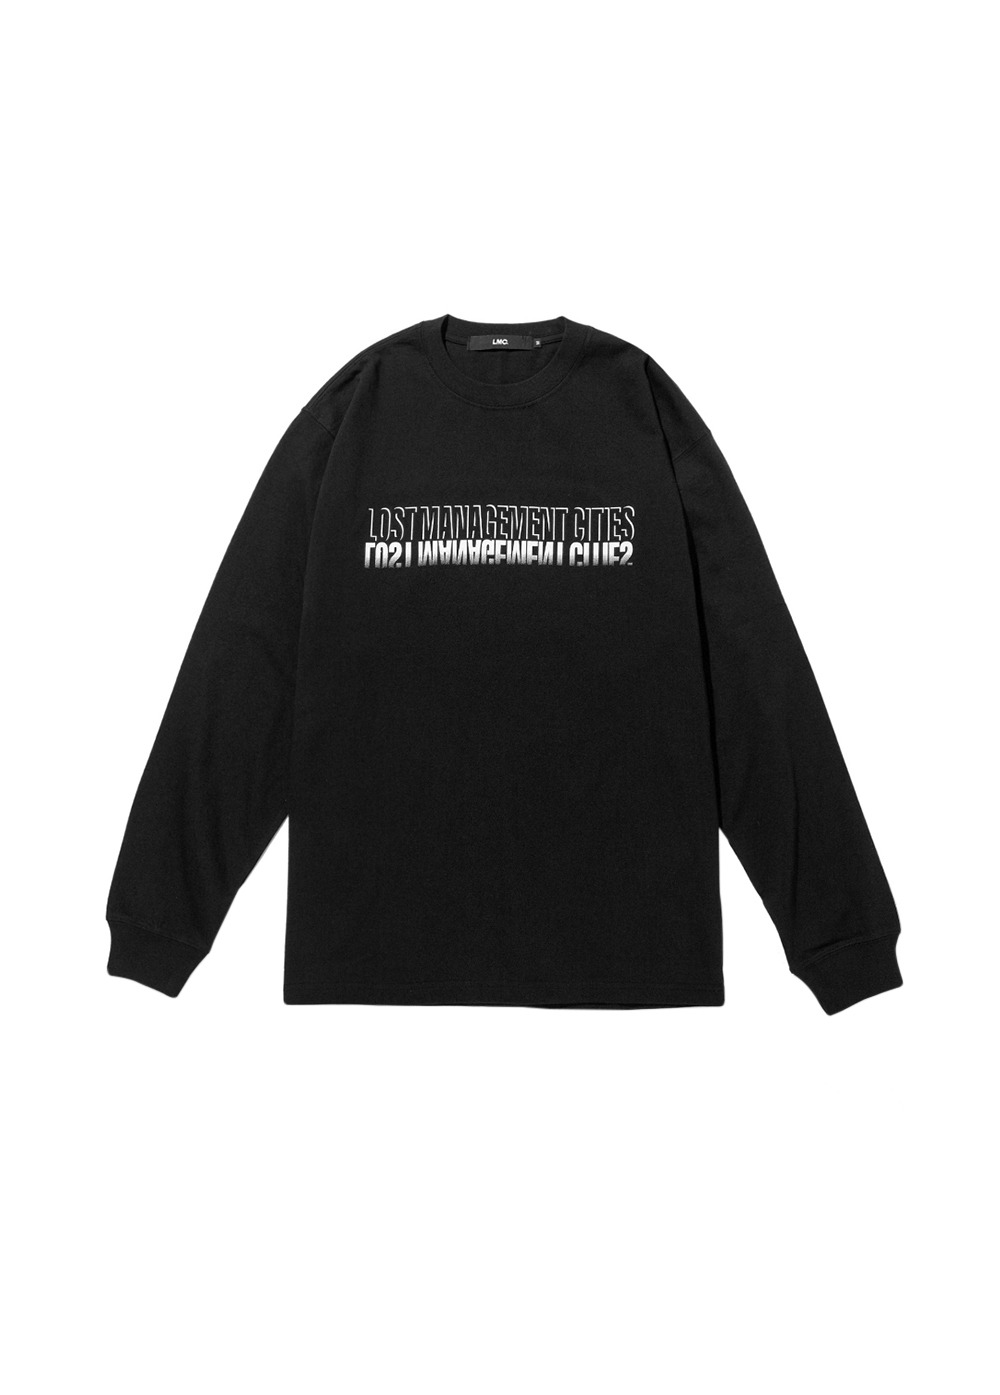 LMC SHADOW FN LONG SLV TEE black